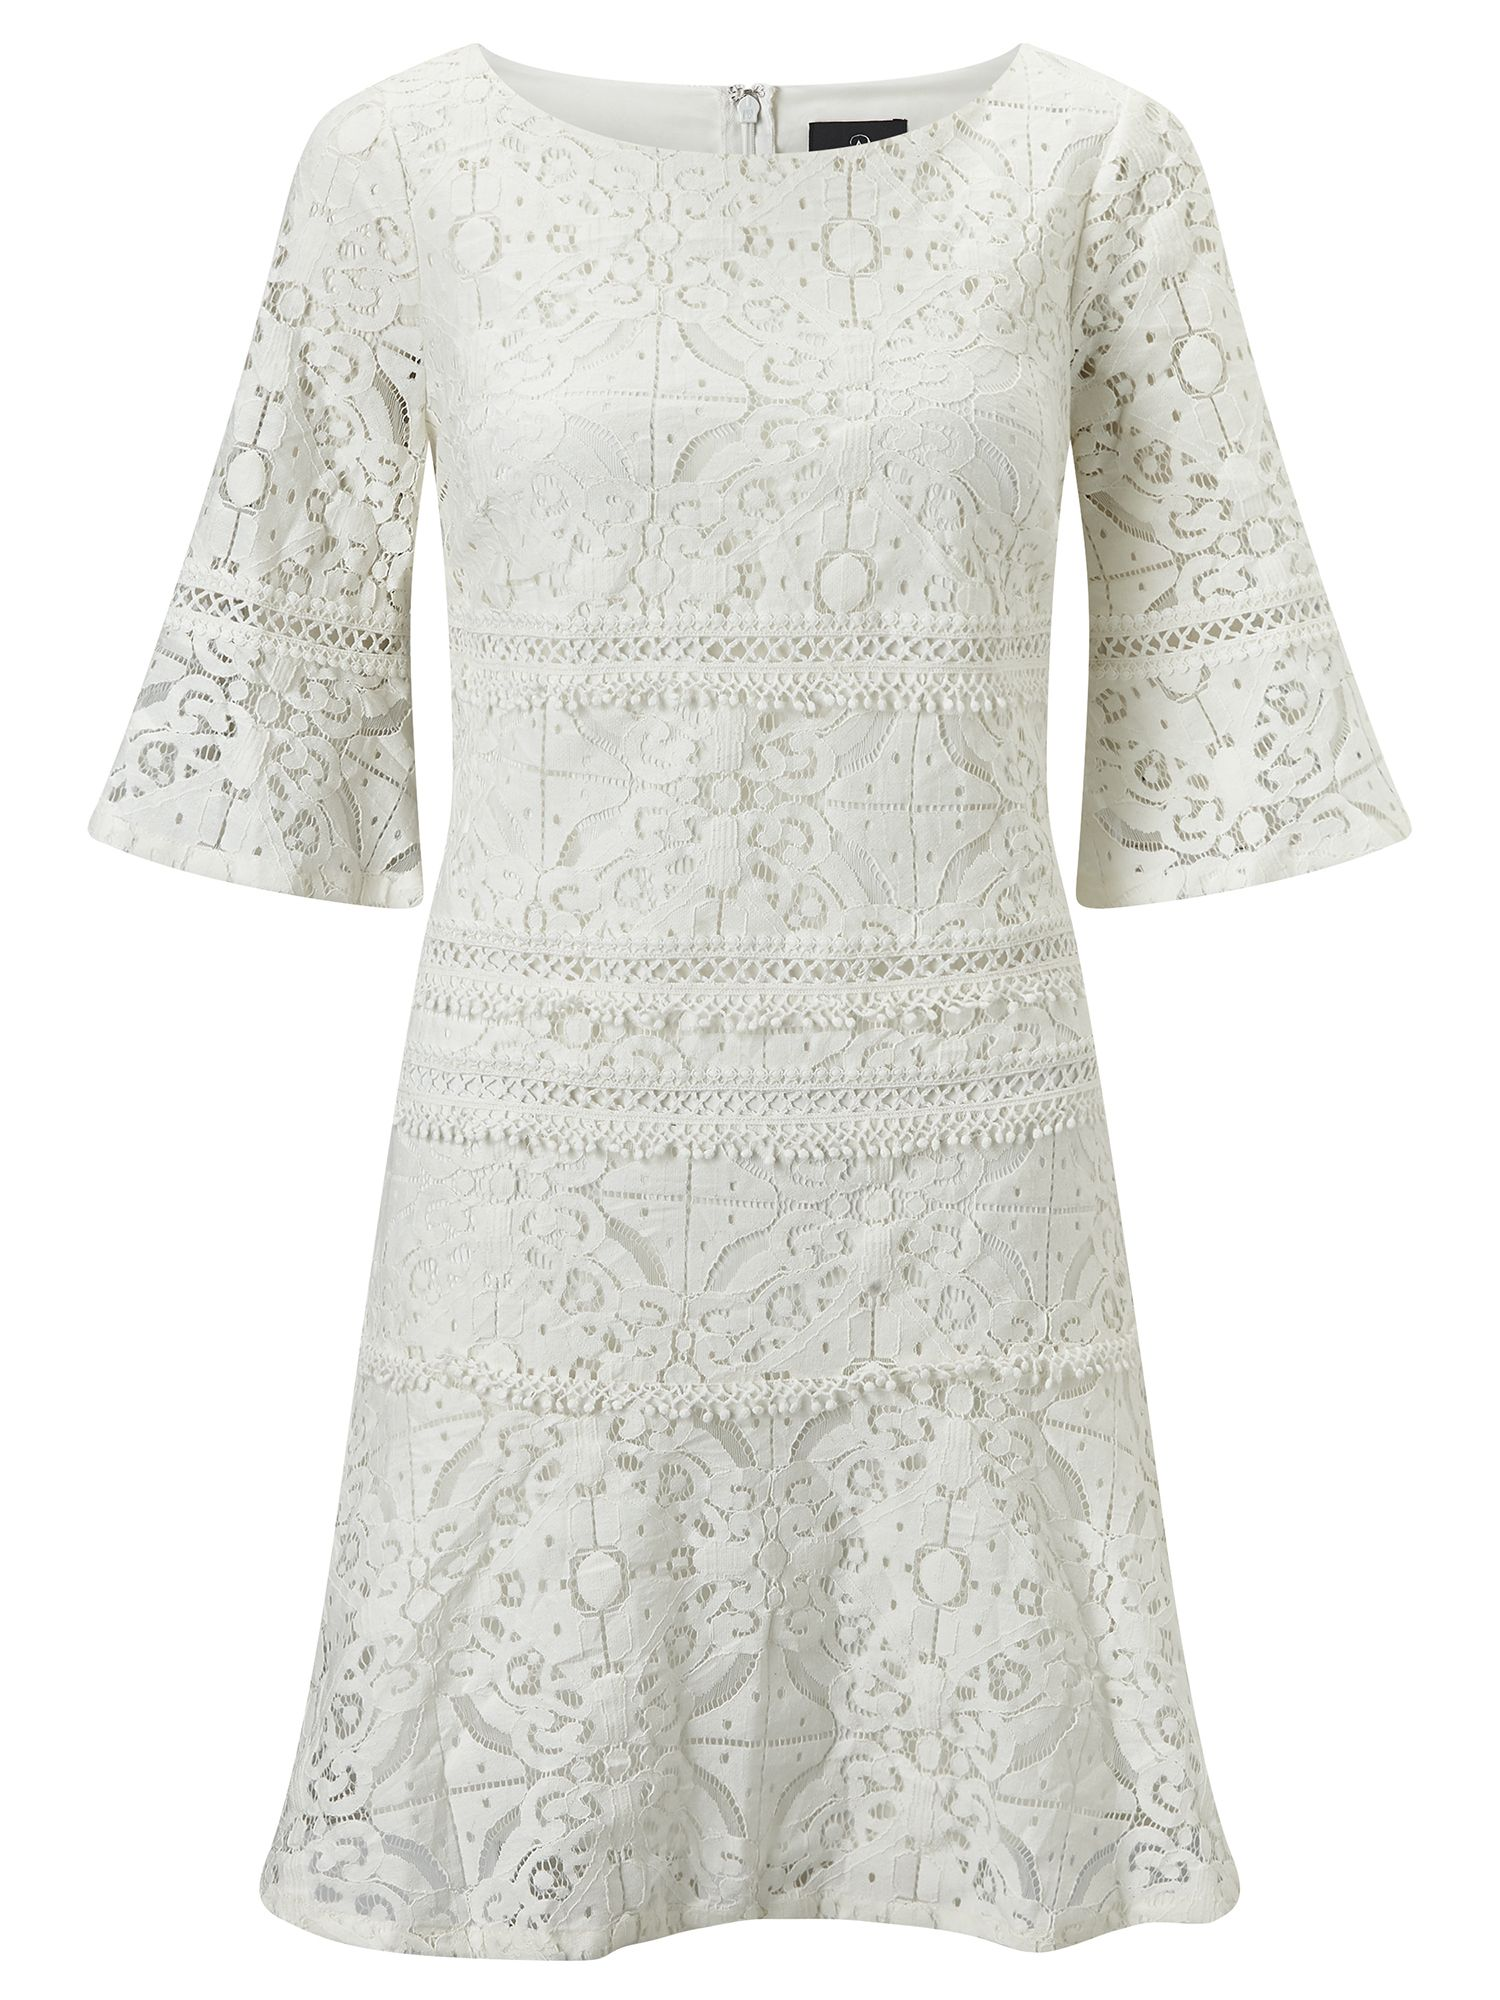 Adrianna Papell 3/4 sleeve lace shift dress, Cream